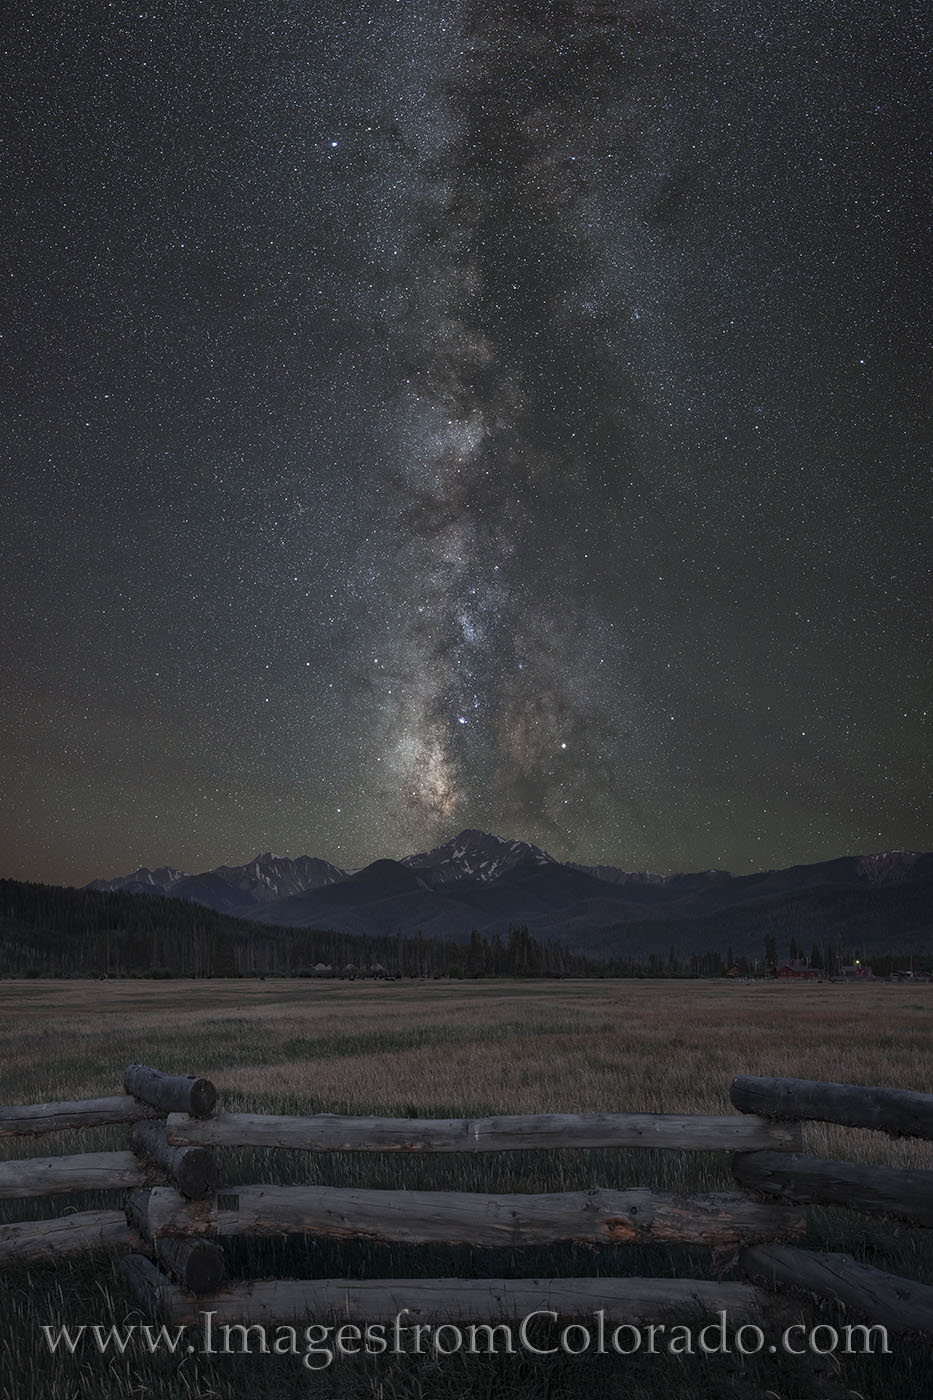 milky way, byers peak, stars, fraser, grand county, night, dark skies, fence, cold, summer, night sky, fraser valley, photo